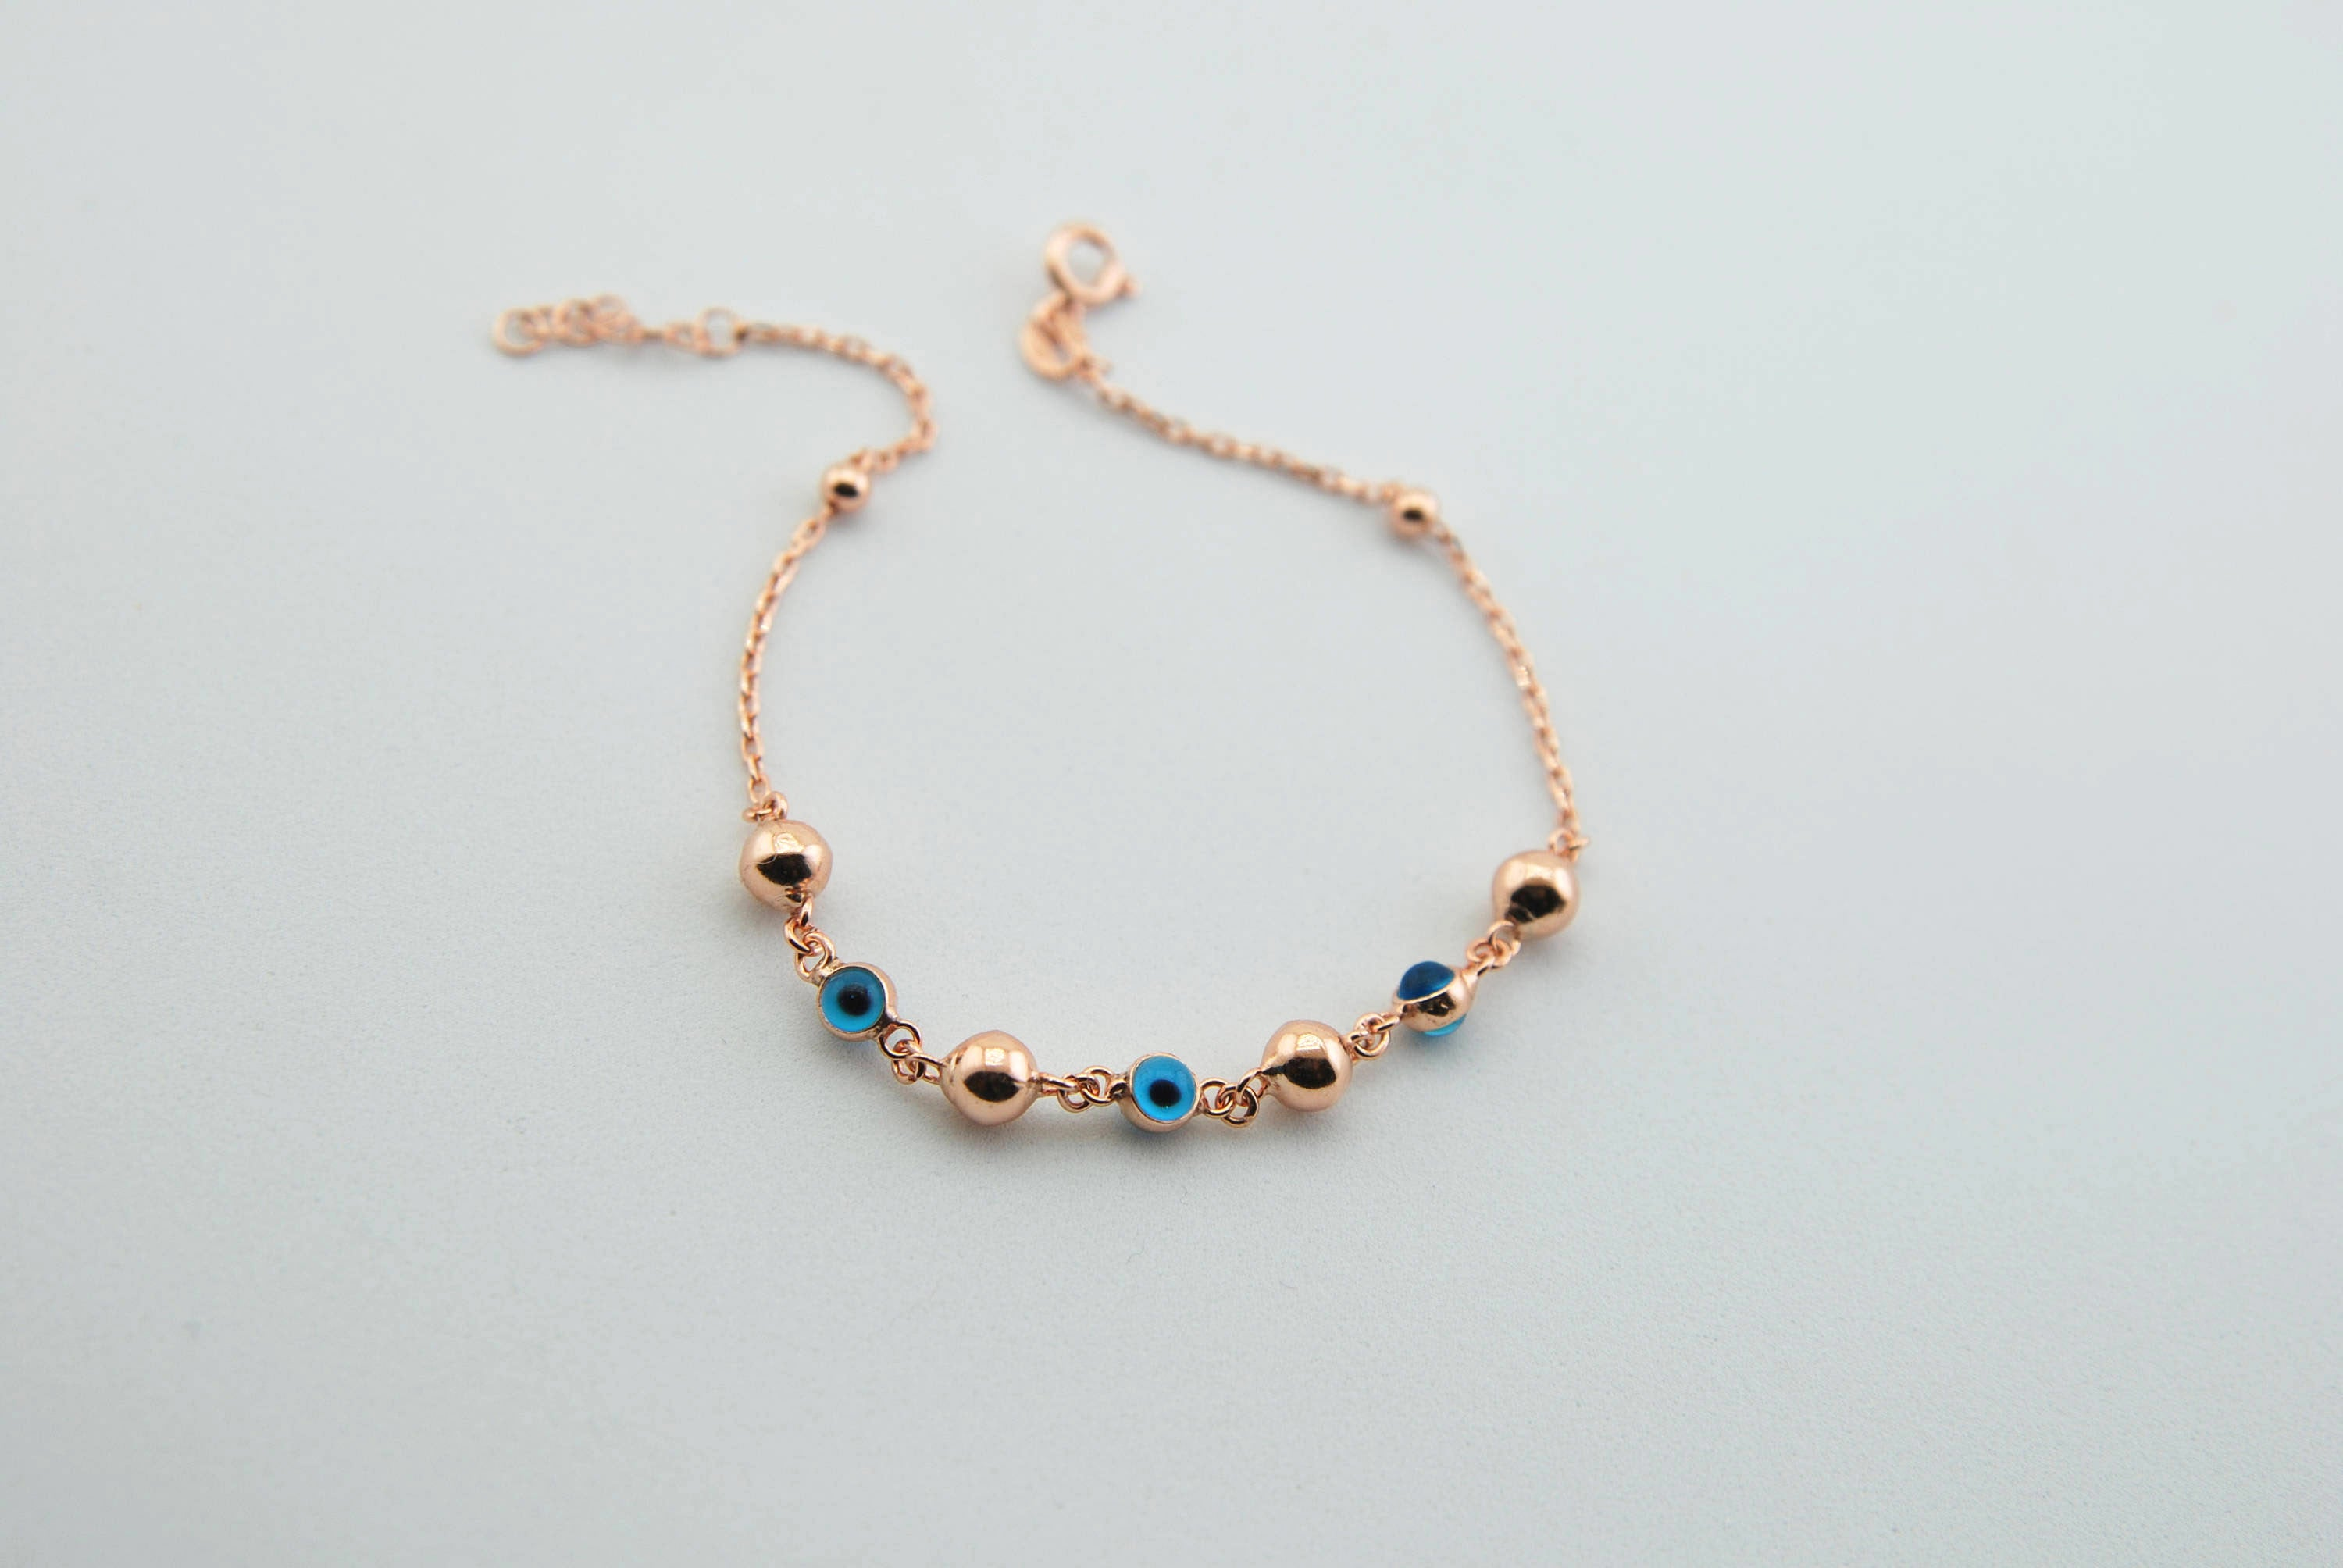 Handmade Evil Eye Bracelet, Rose Gold Plated Sterling Silver - Babazen